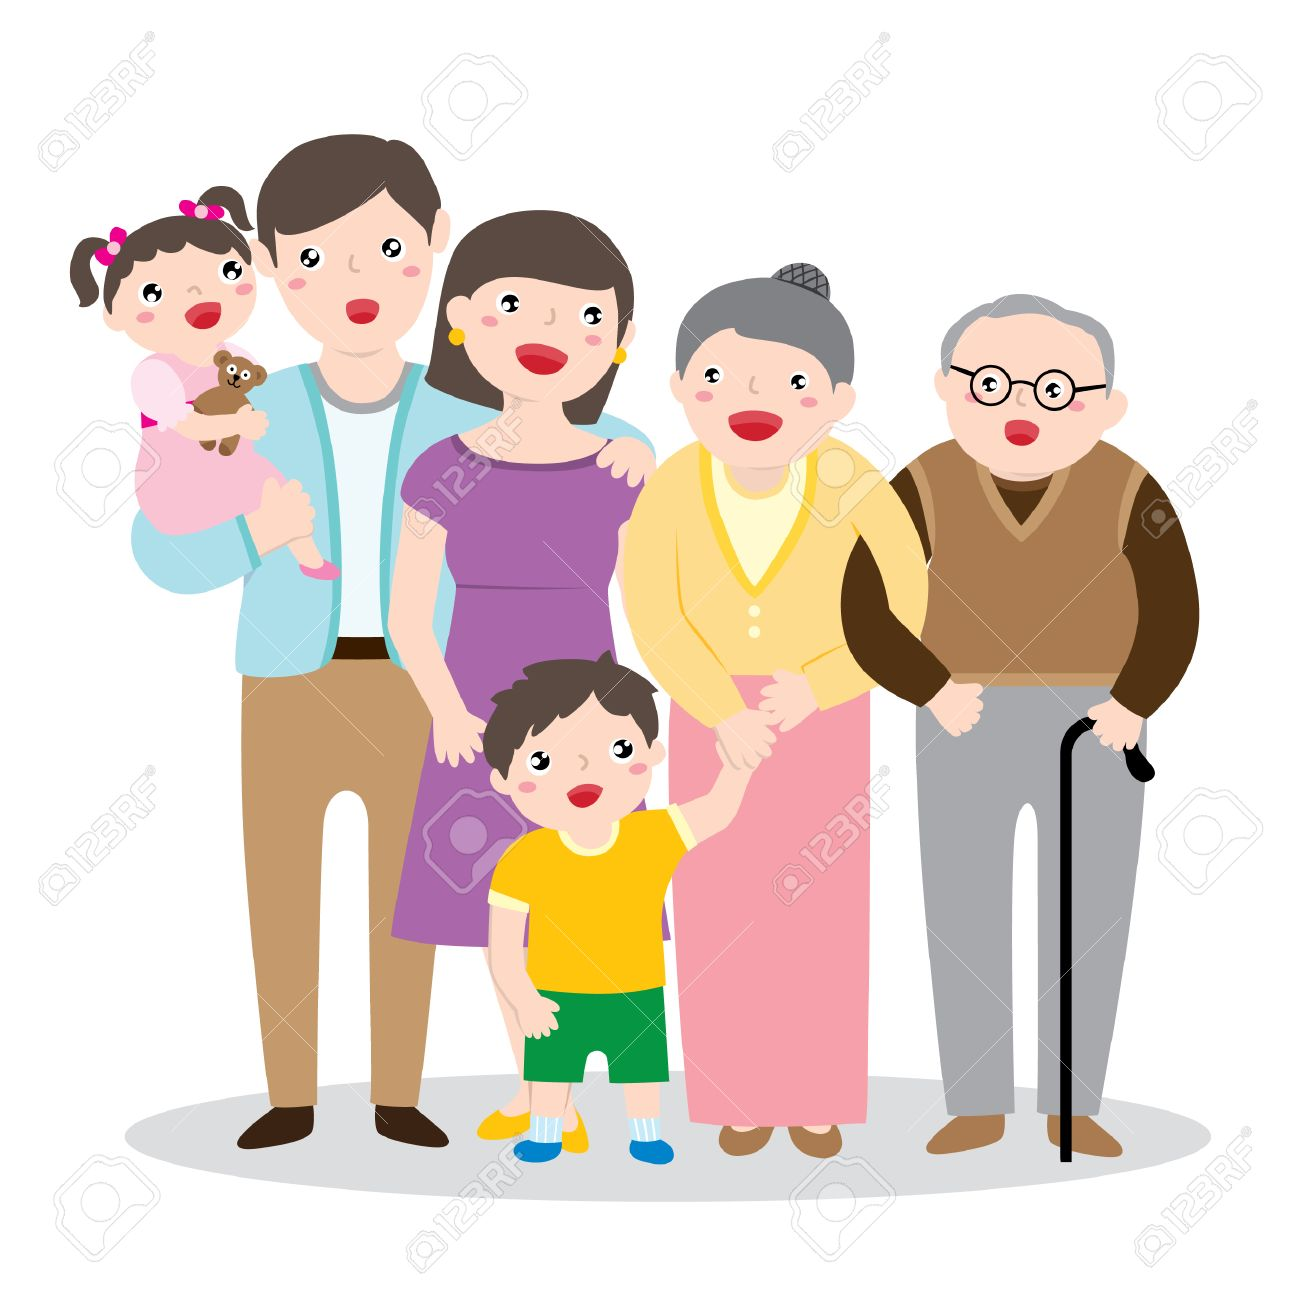 1300x1300 Drawing Of A Big Happy Family Portrait With Parents, Children